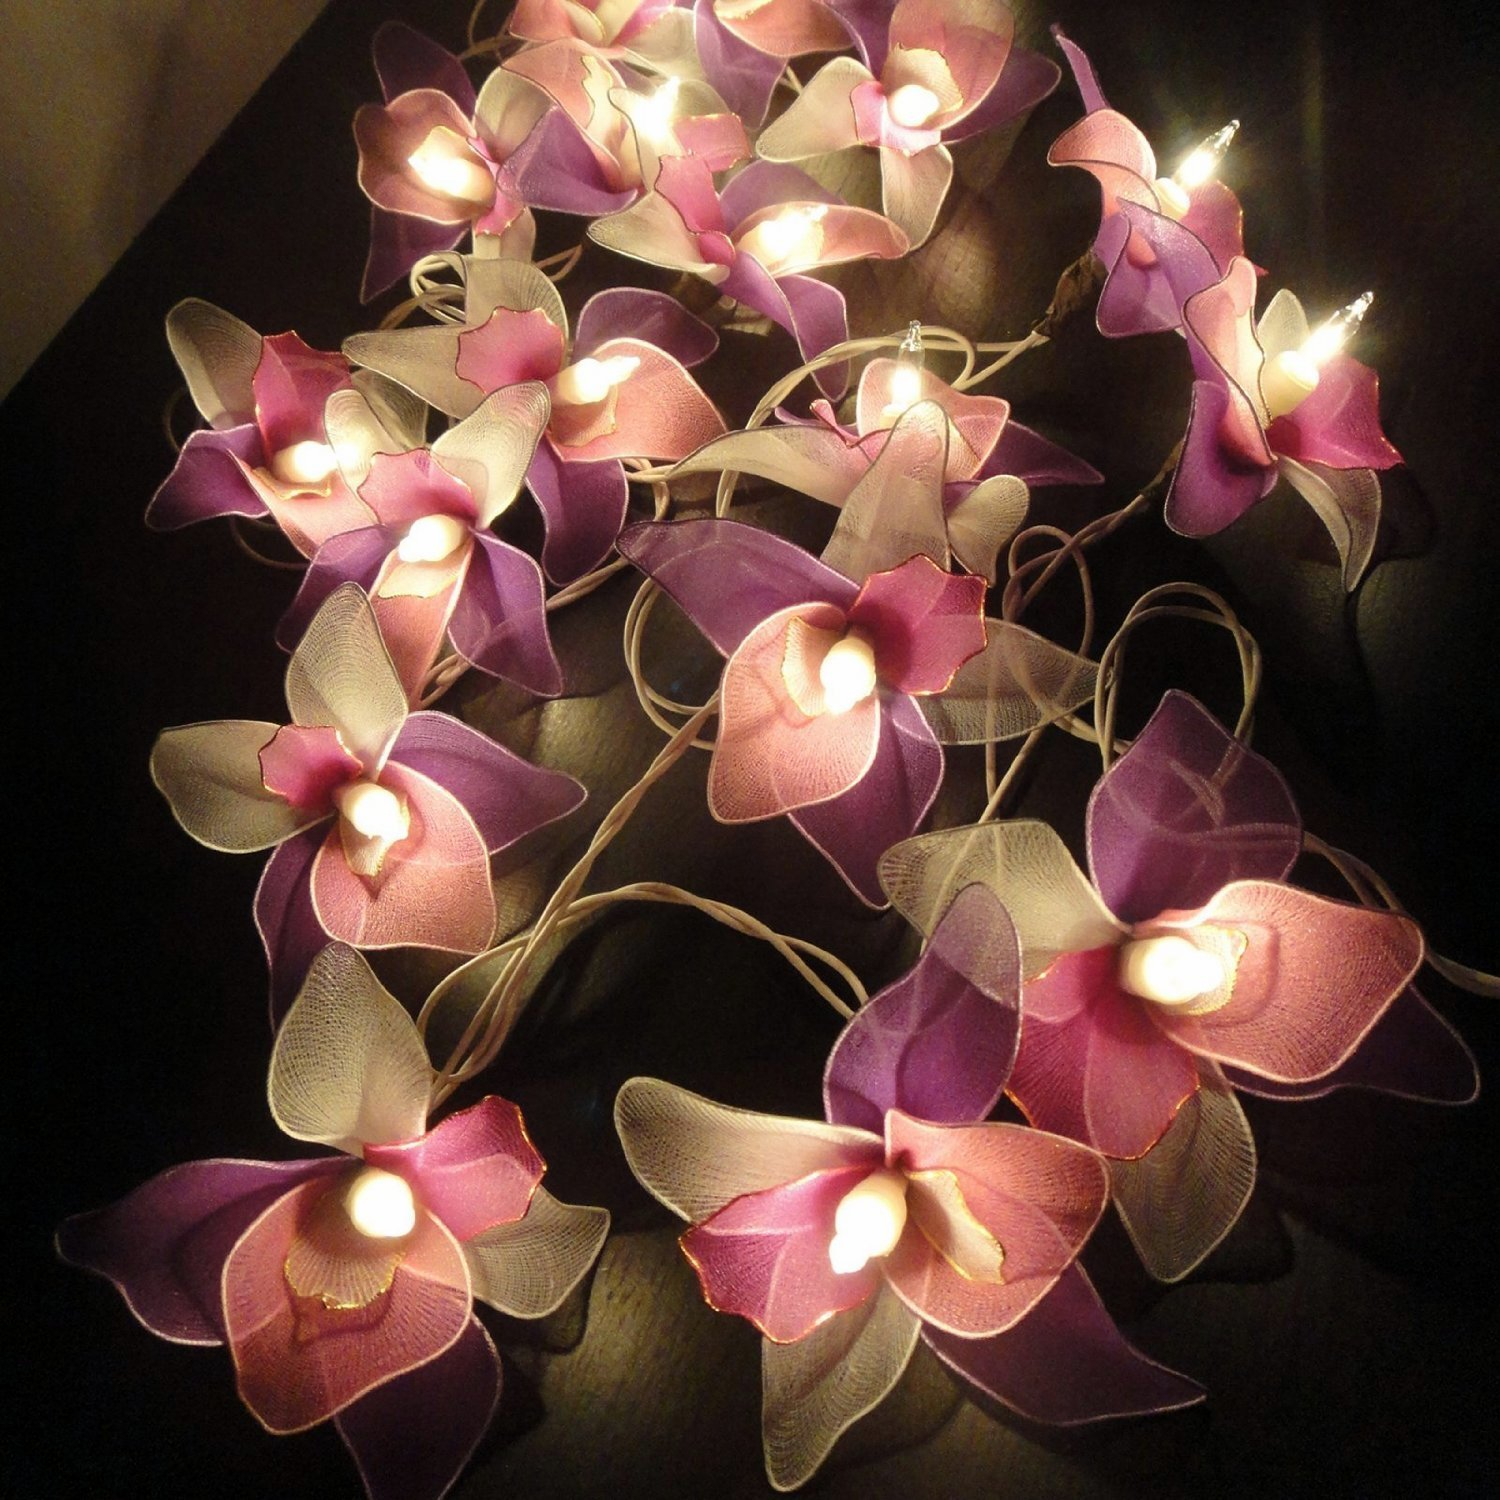 Thai Vintage Handmade 25 lights White Pink Purple Orchid Flower Fairy String Lights Wedding Party Decor Long 15 feet. by Thai Decorated